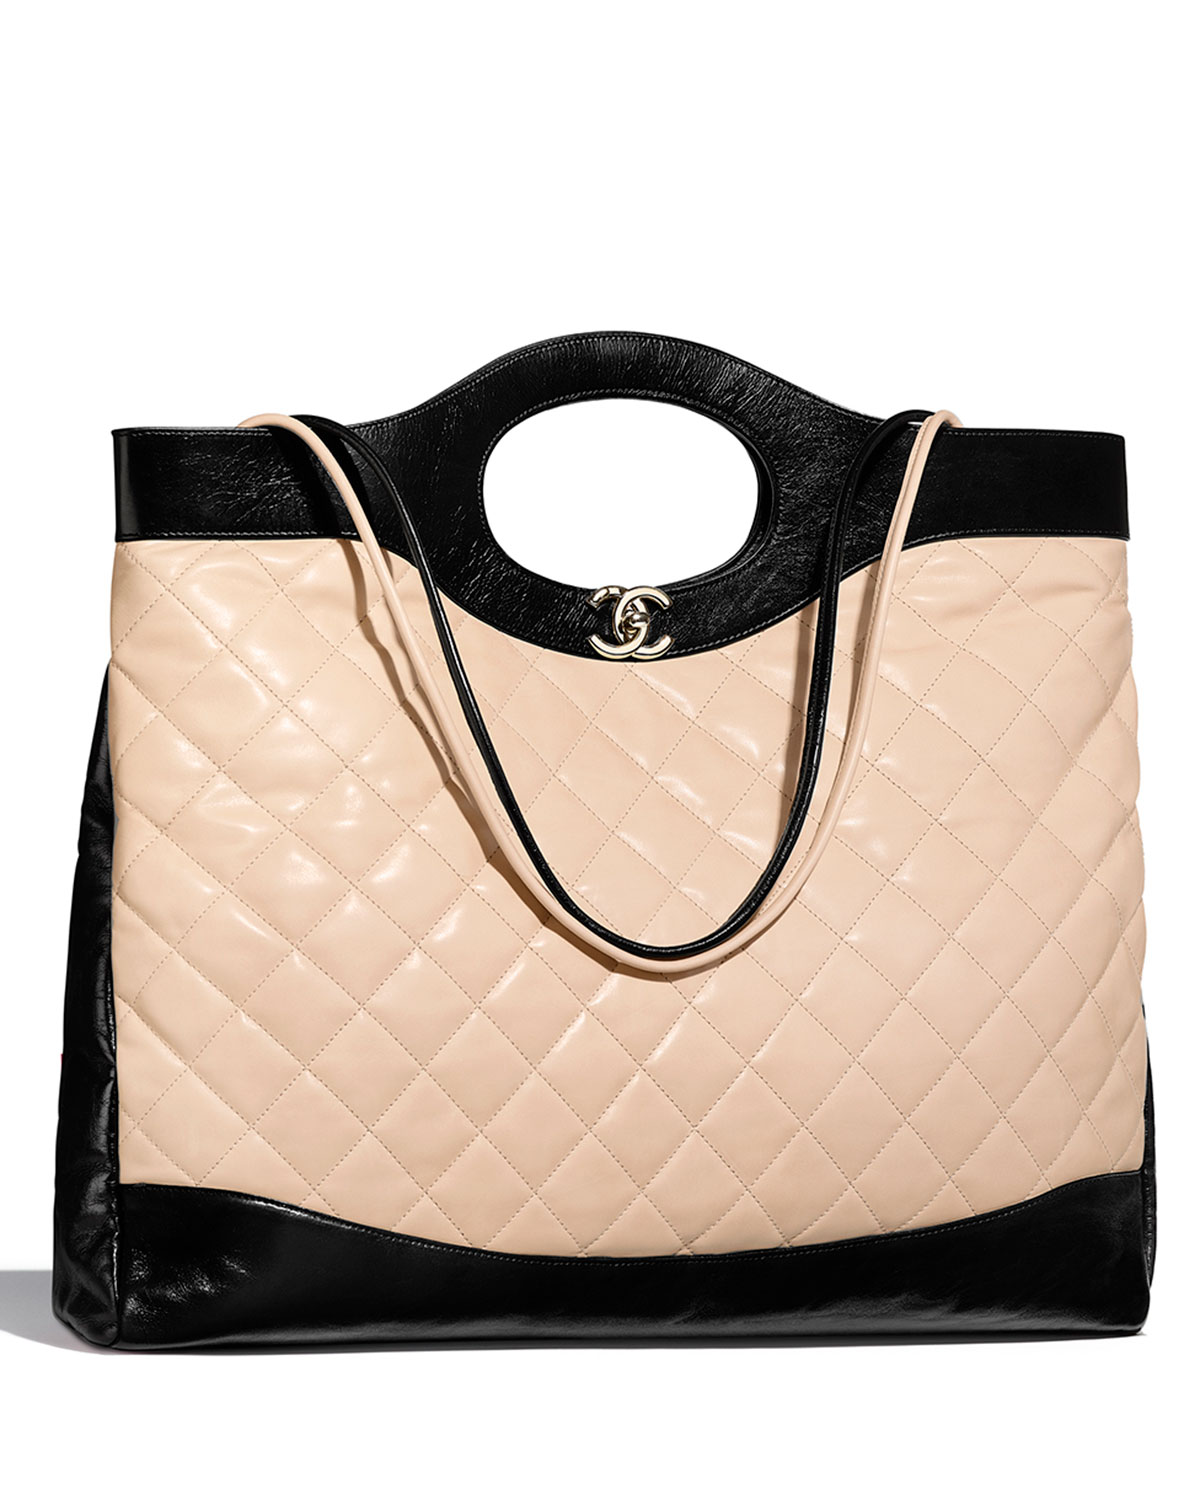 8ce5cf28d116 CHANEL CHANEL 31 LARGE SHOPPING BAG | Neiman Marcus